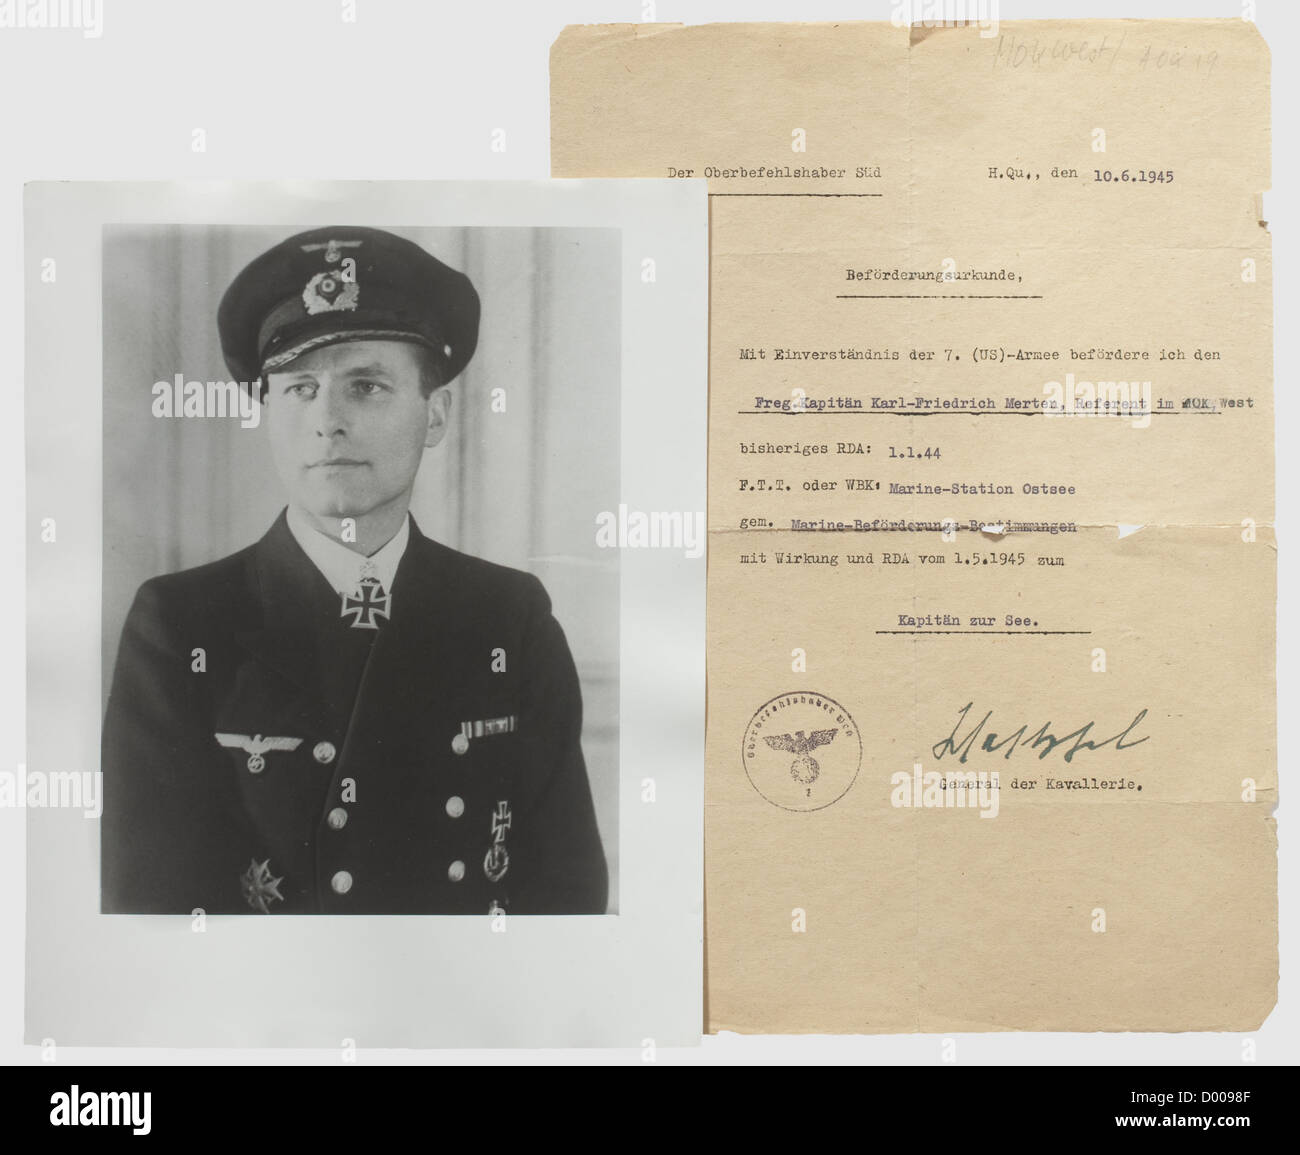 Karl-Friedrich Merten - A promotion document to Kapitän zur See (Captain) dated 10 June 1945(!), Hectographic - Stock Image